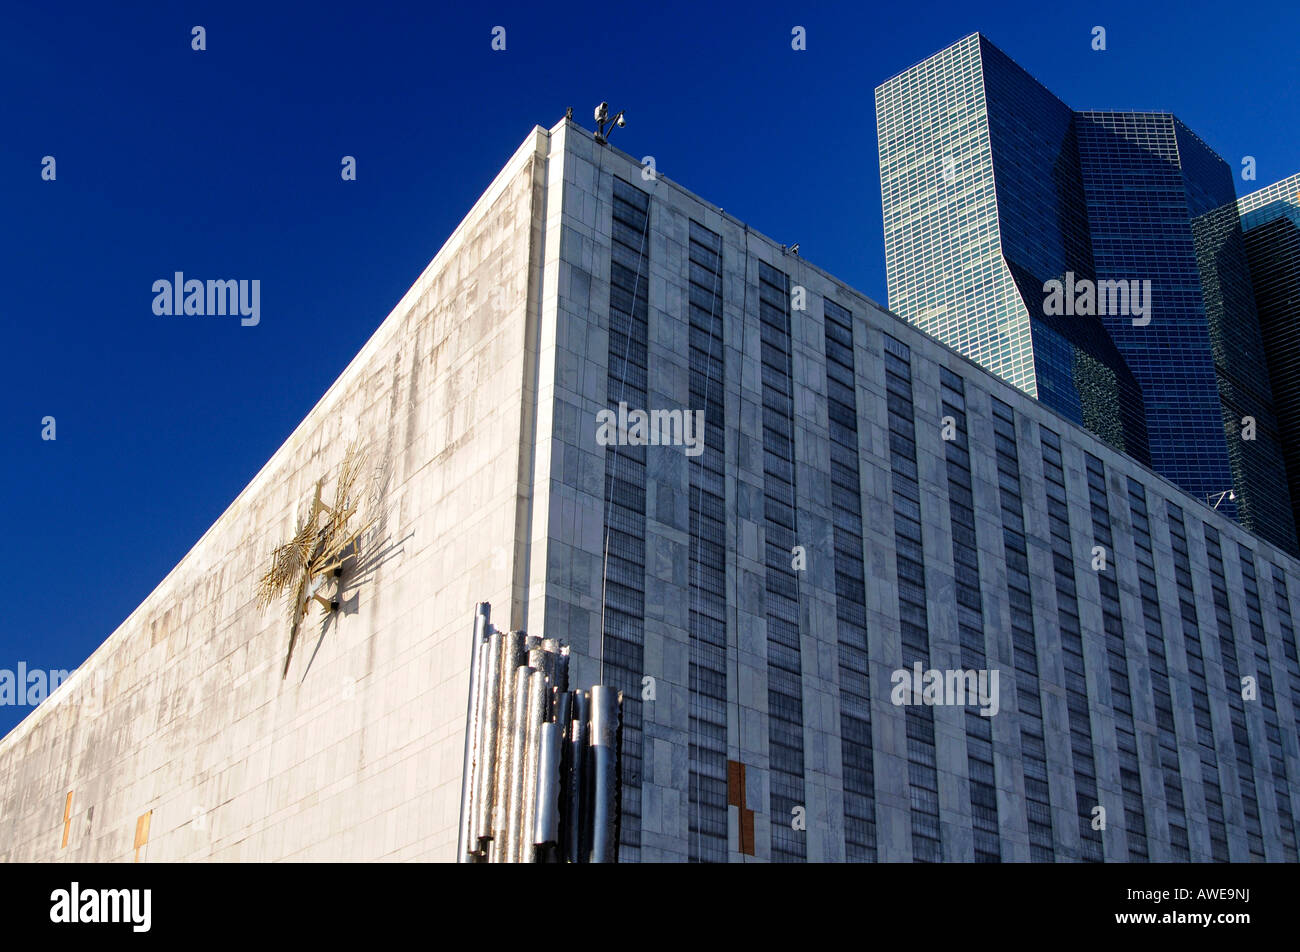 United Nations General Assembly Hall and UN Plaza skyscraper, Manhattan, New York, USA - Stock Image